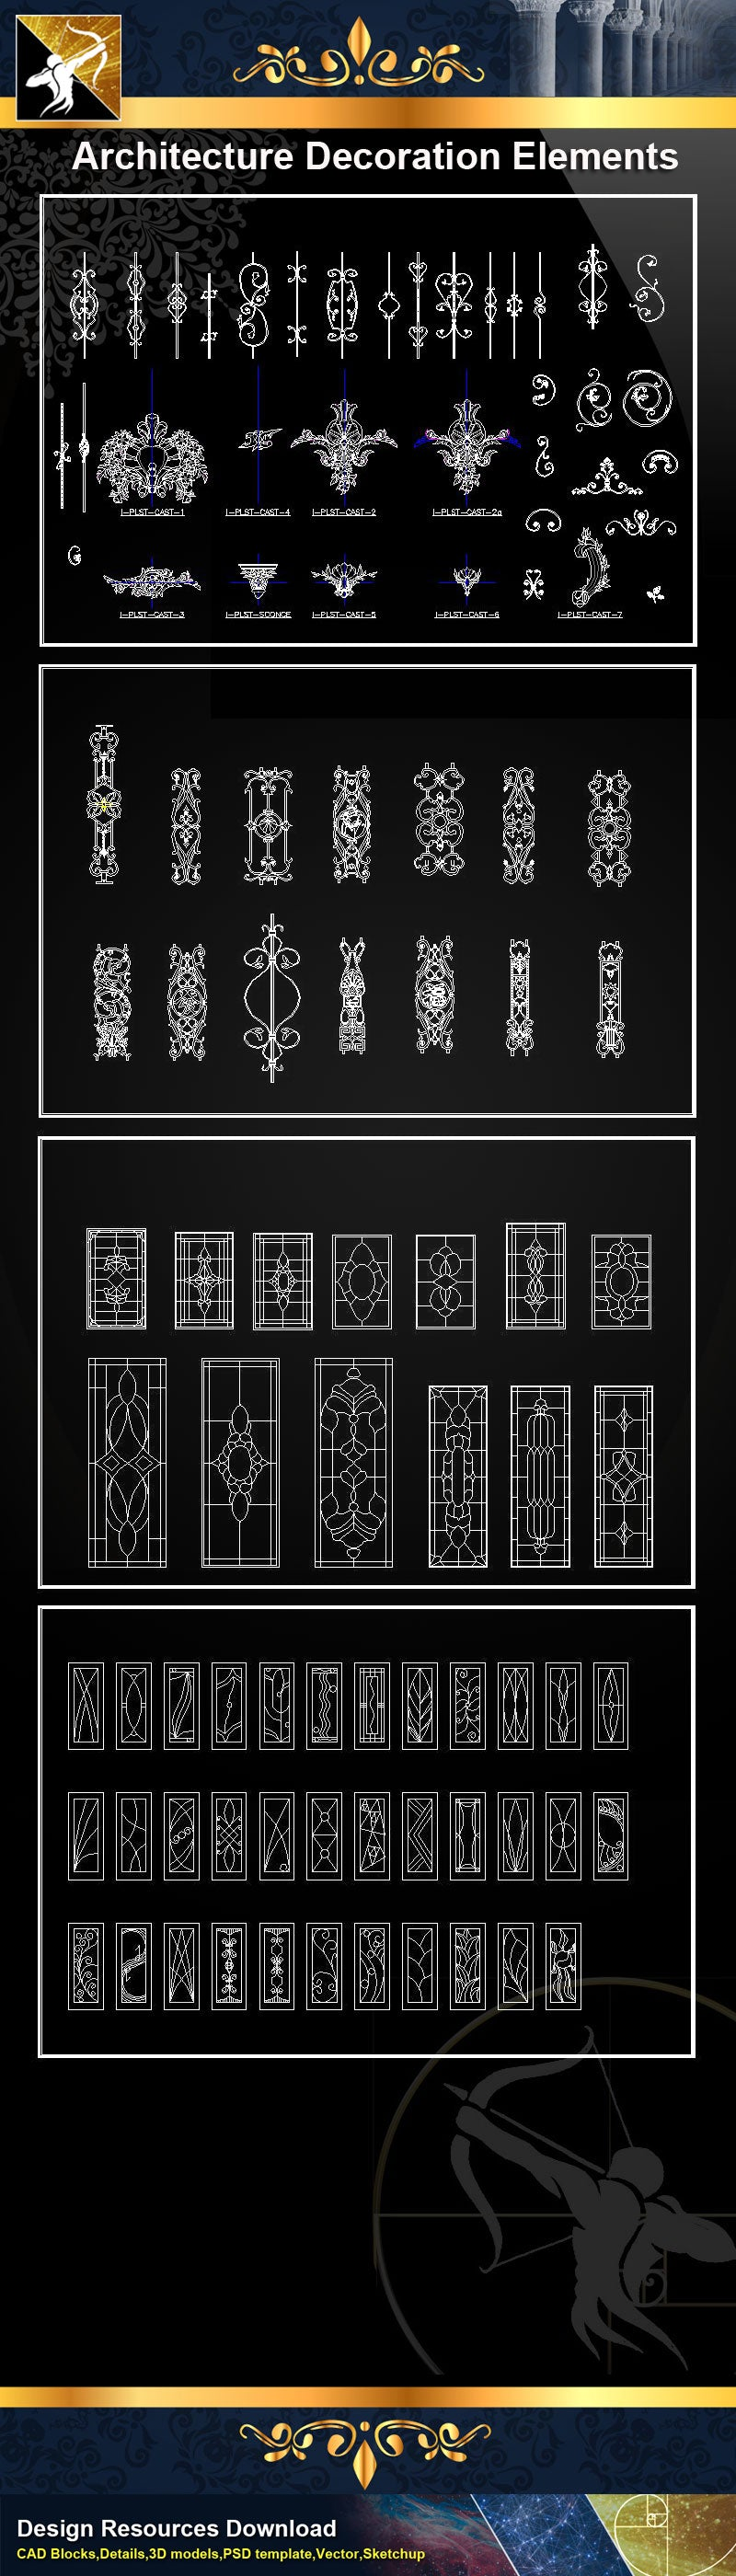 ★★Architectural Decorative CAD Elements